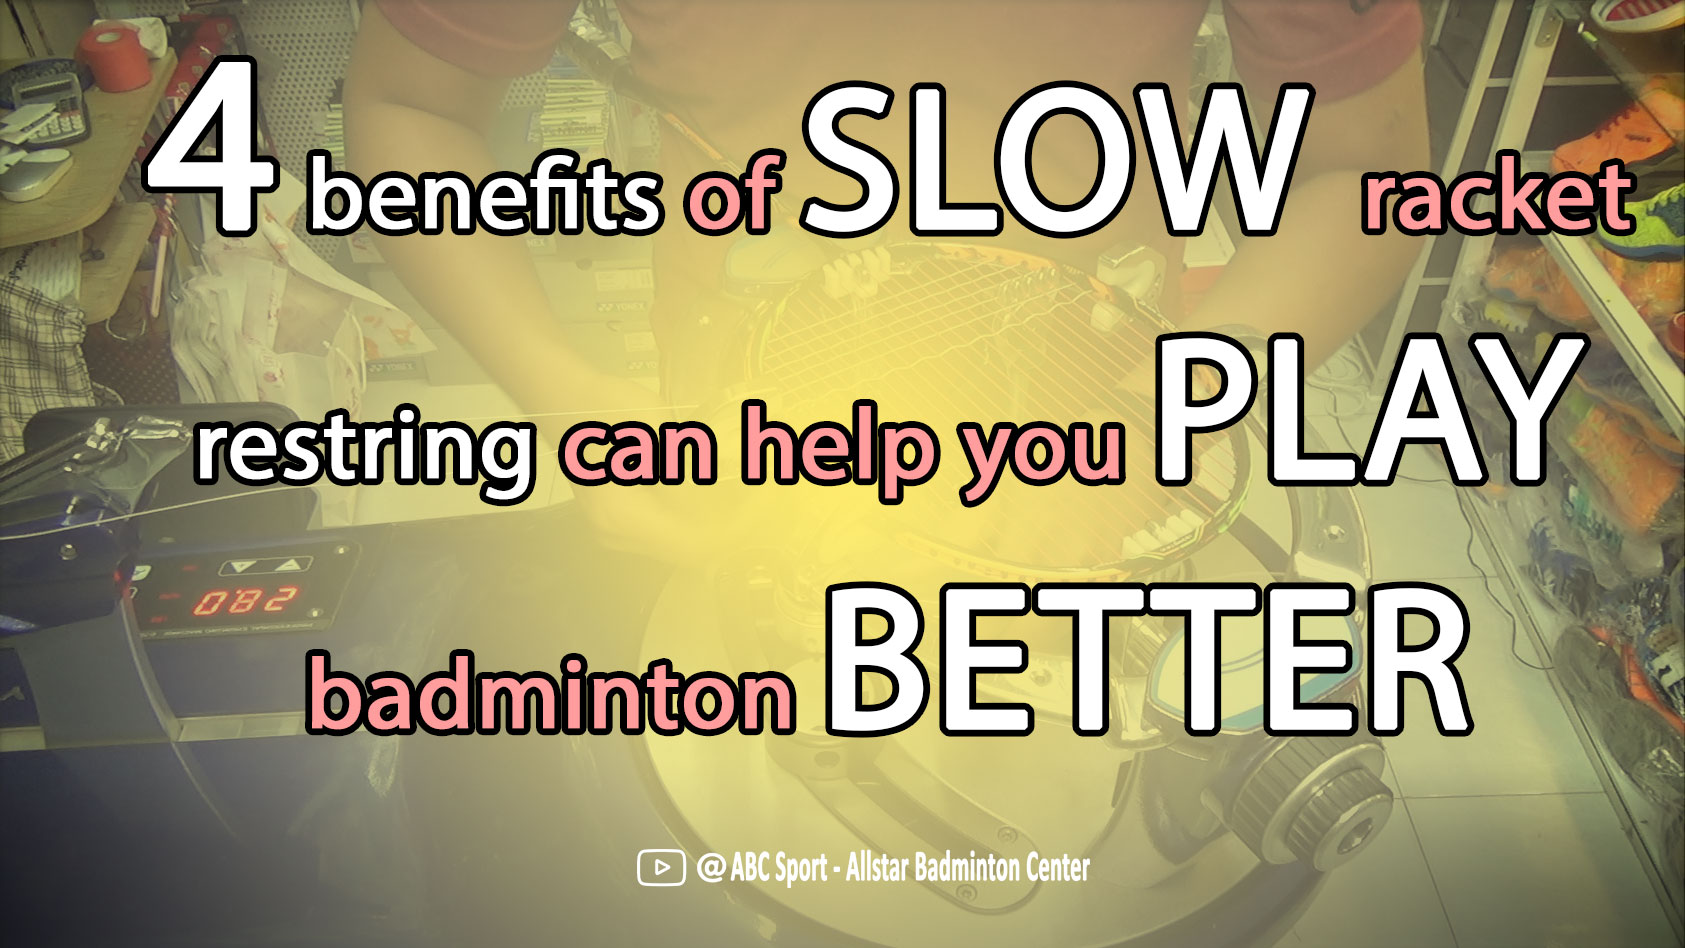 4 benefits of slow racket restring can help you play badminton better